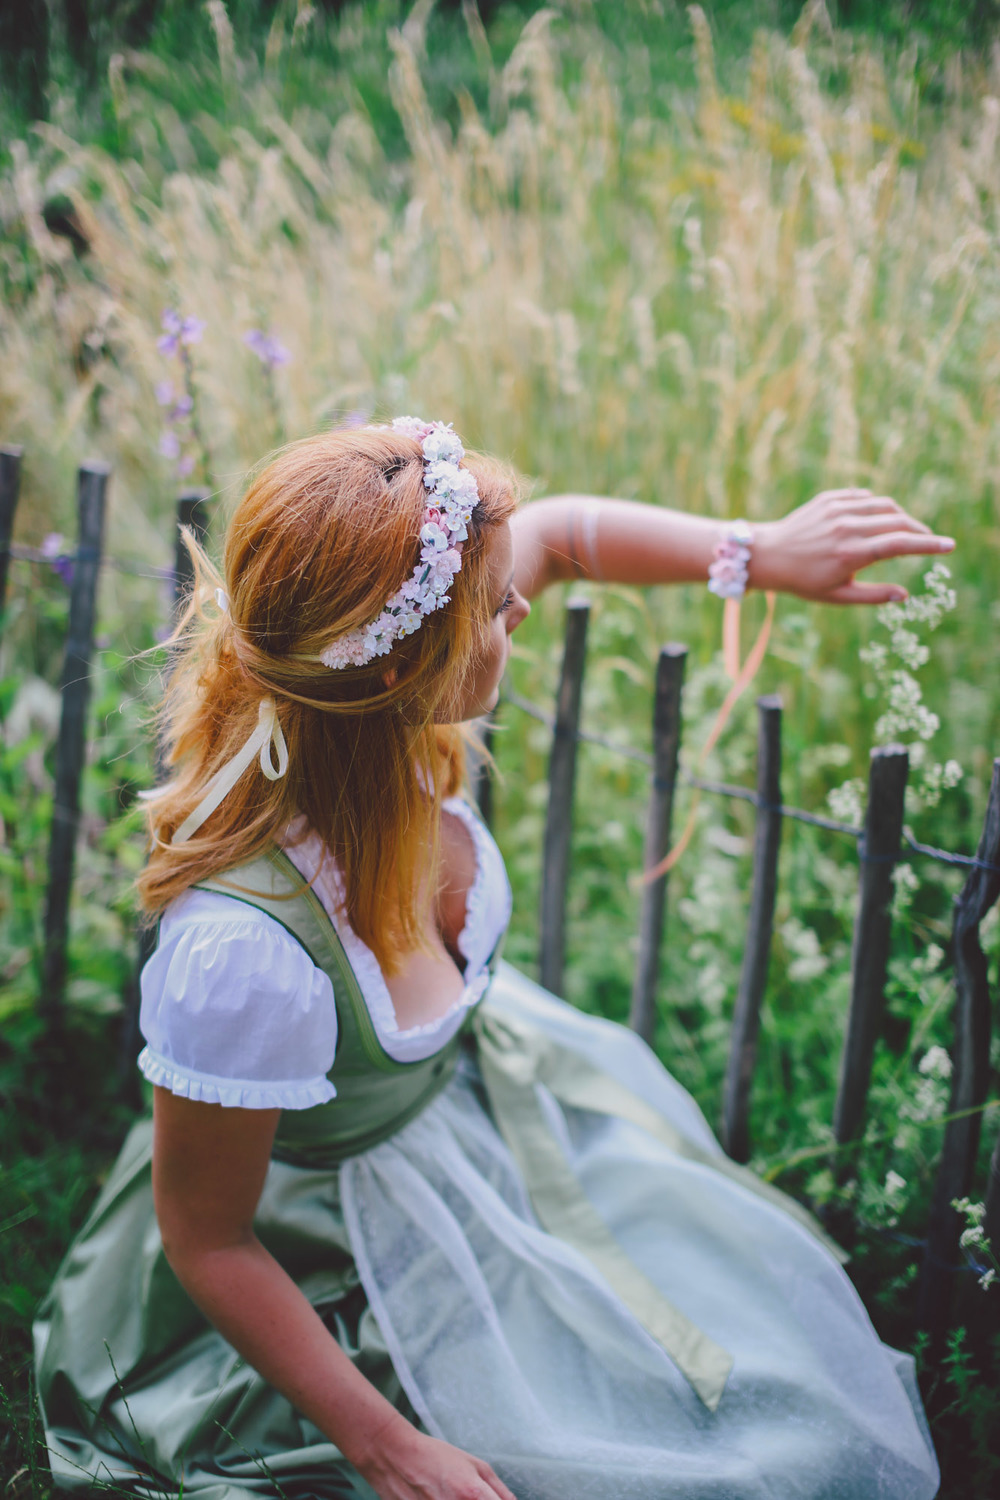 ADA16_Lookbook_We_are_flowergirls_blumenkranz_trachten_flowercrown_(13_von_40)_WEB.jpg